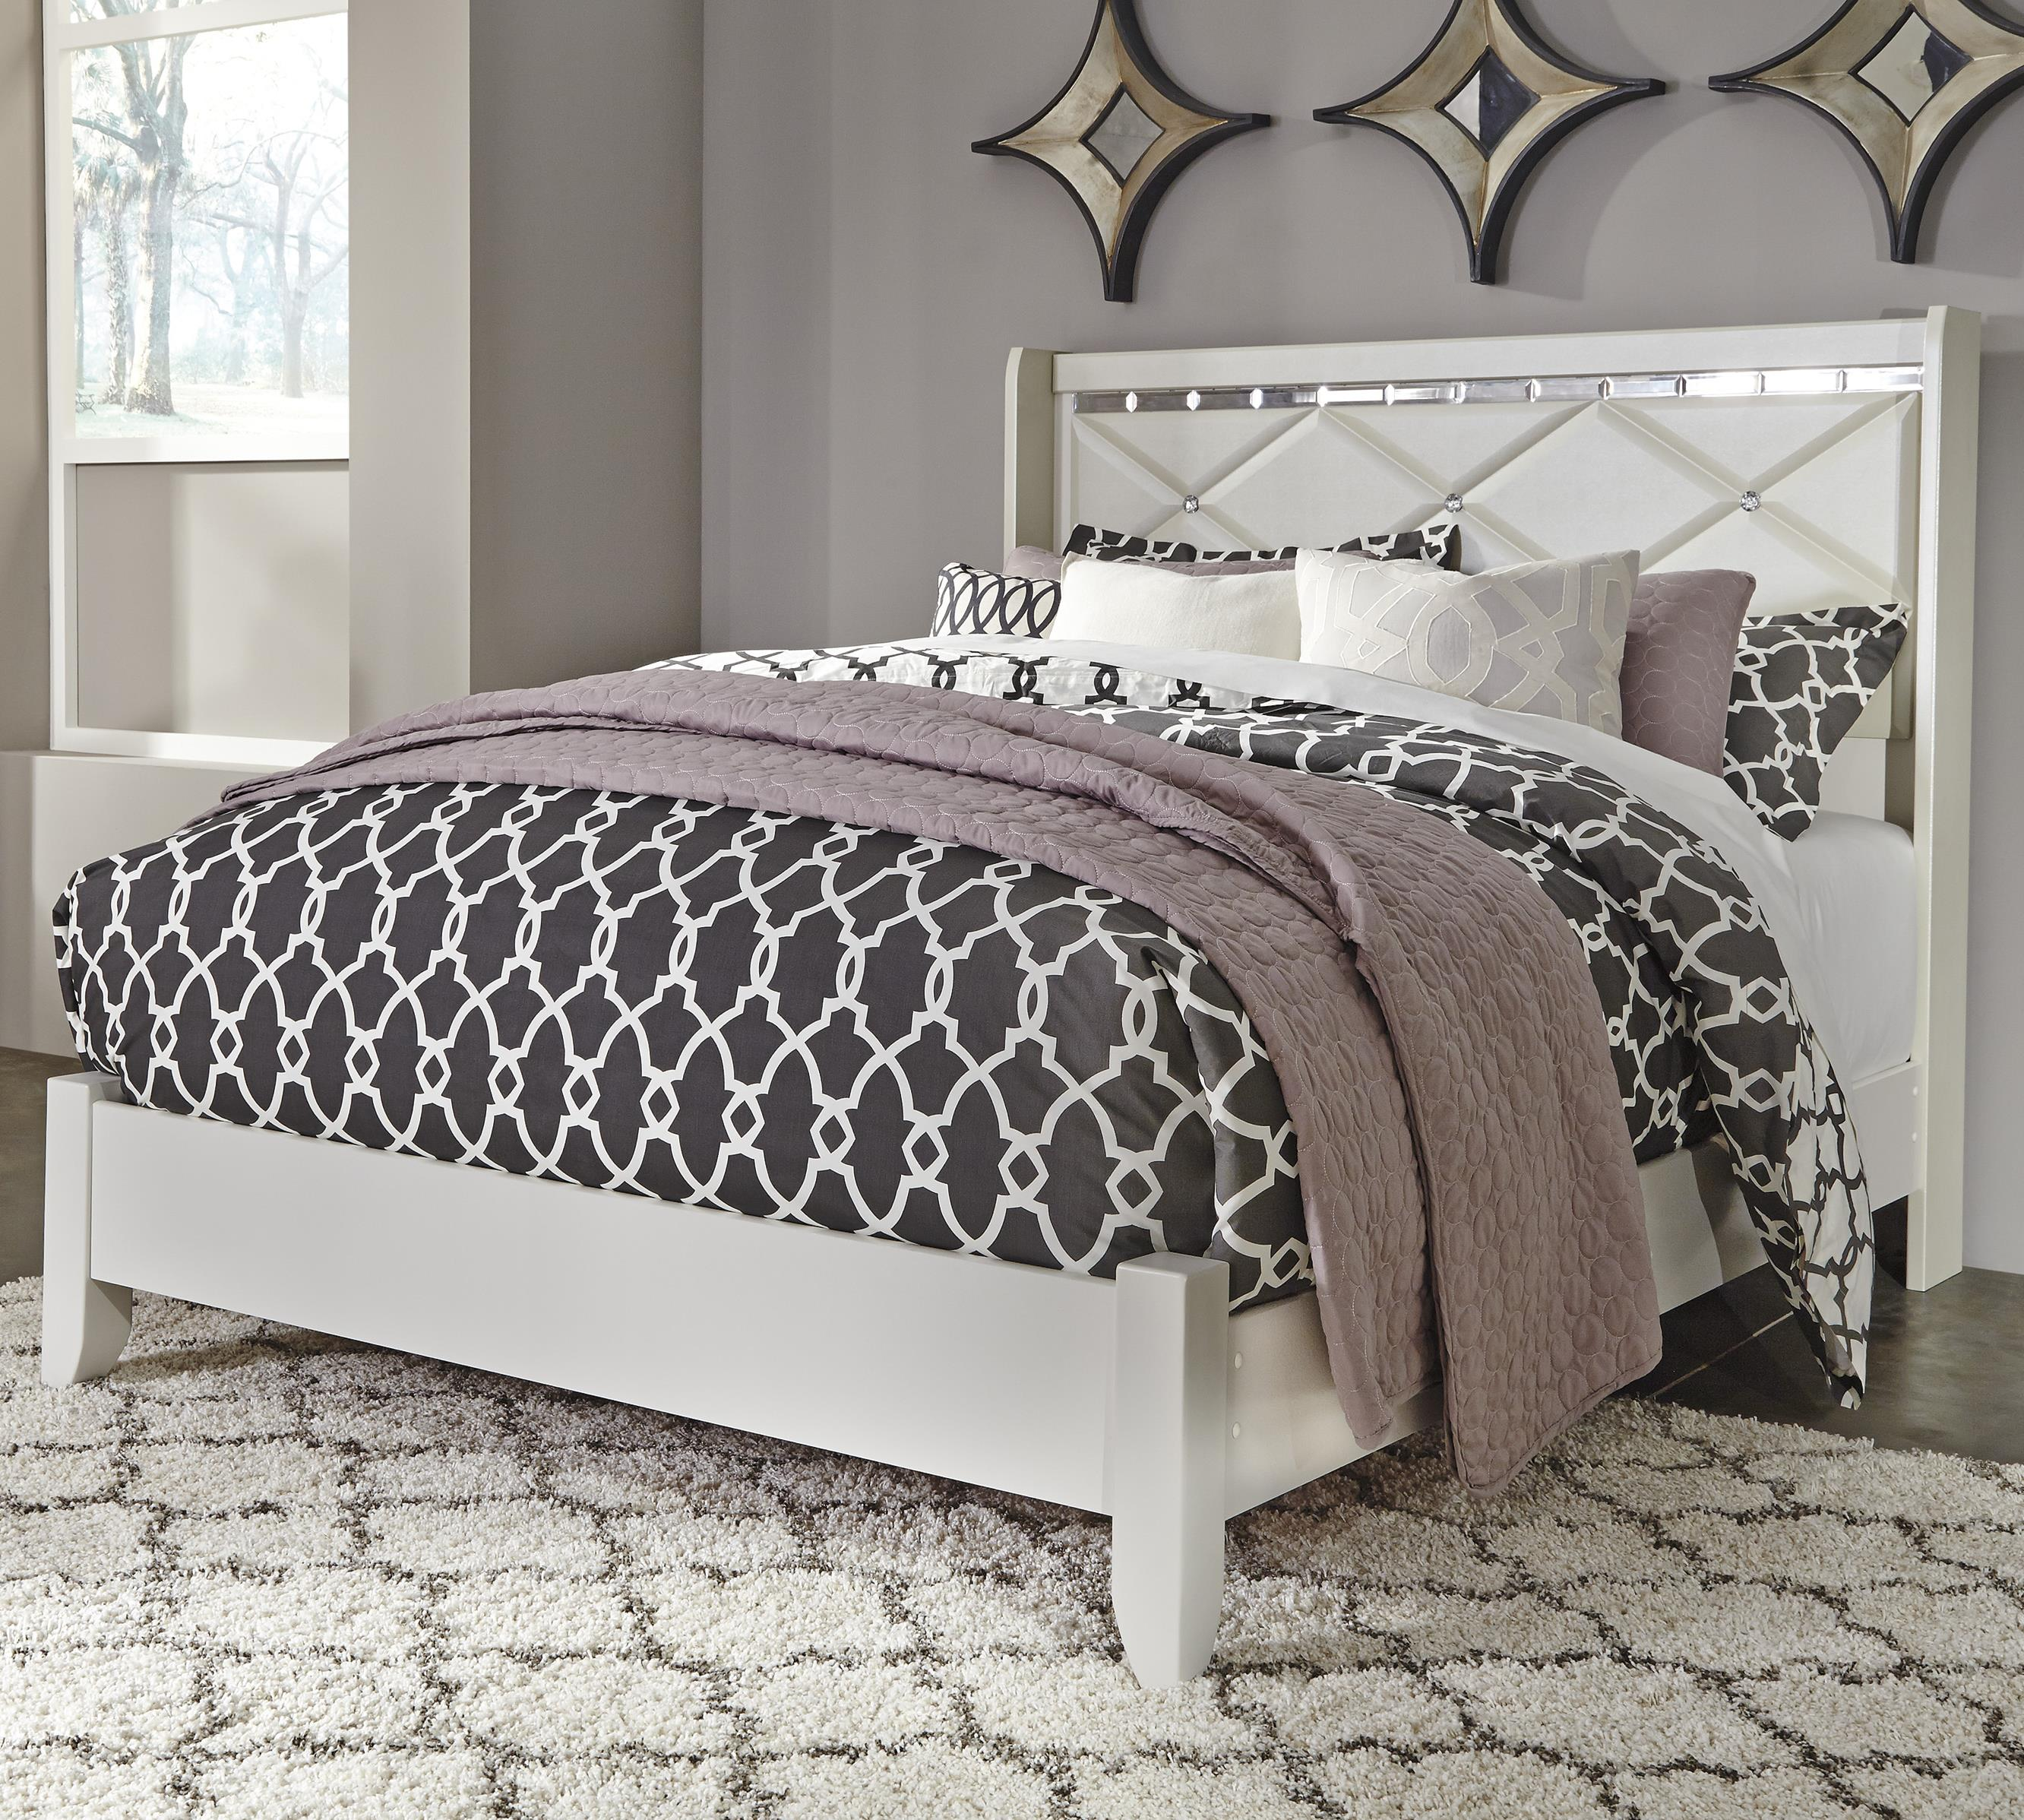 Dreamur Queen Panel Bed by Signature Design by Ashley at Sparks HomeStore